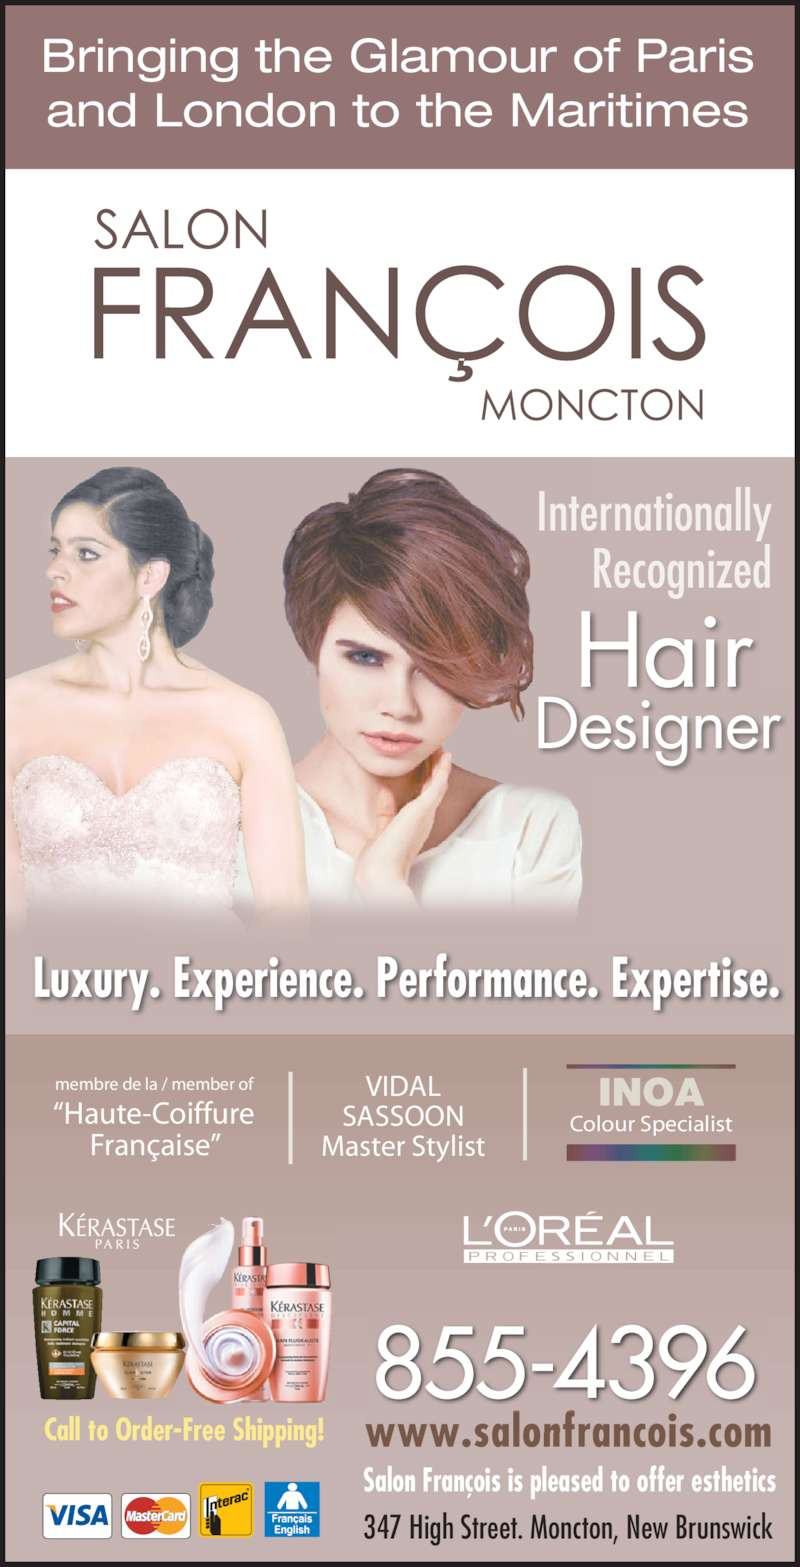 "Francois Beauty Salon (506-855-4396) - Display Ad - 347 High Street. Moncton, New Brunswick www.salonfrancois.com Internationally Recognized Bringing the Glamour of Paris and London to the Maritimes Luxury. Experience. Performance. Expertise. Salon François is pleased to offer esthetics ""Haute-Coiffure Française"" membre de la / member of VIDAL SASSOON Master Stylist Colour Specialist INOA Call to Order-Free Shipping! 855-4396 Hair Designer"